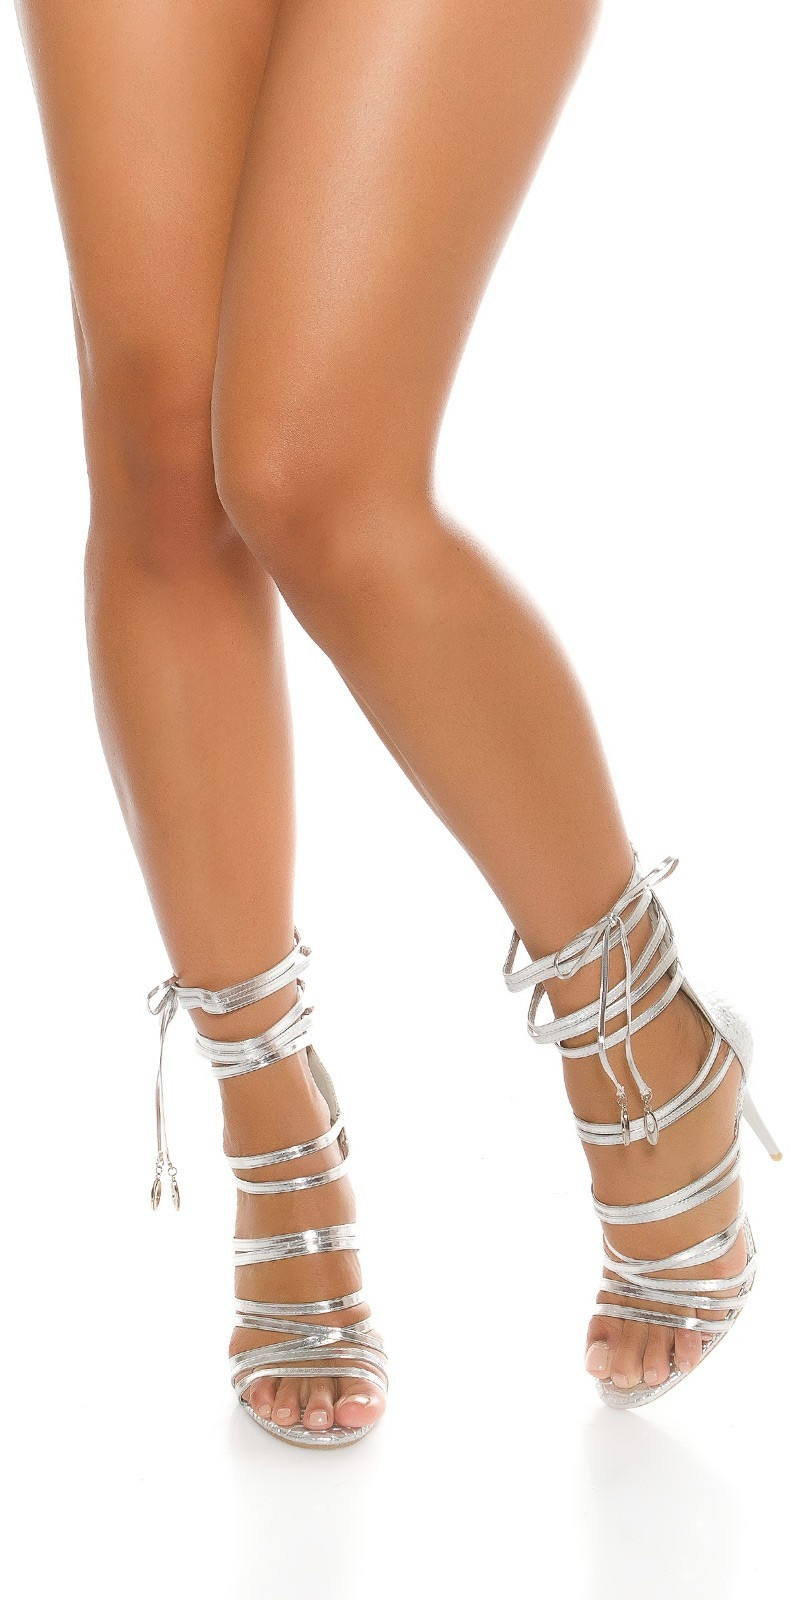 Sexy High Heels Bondage Look Croco Design Silver